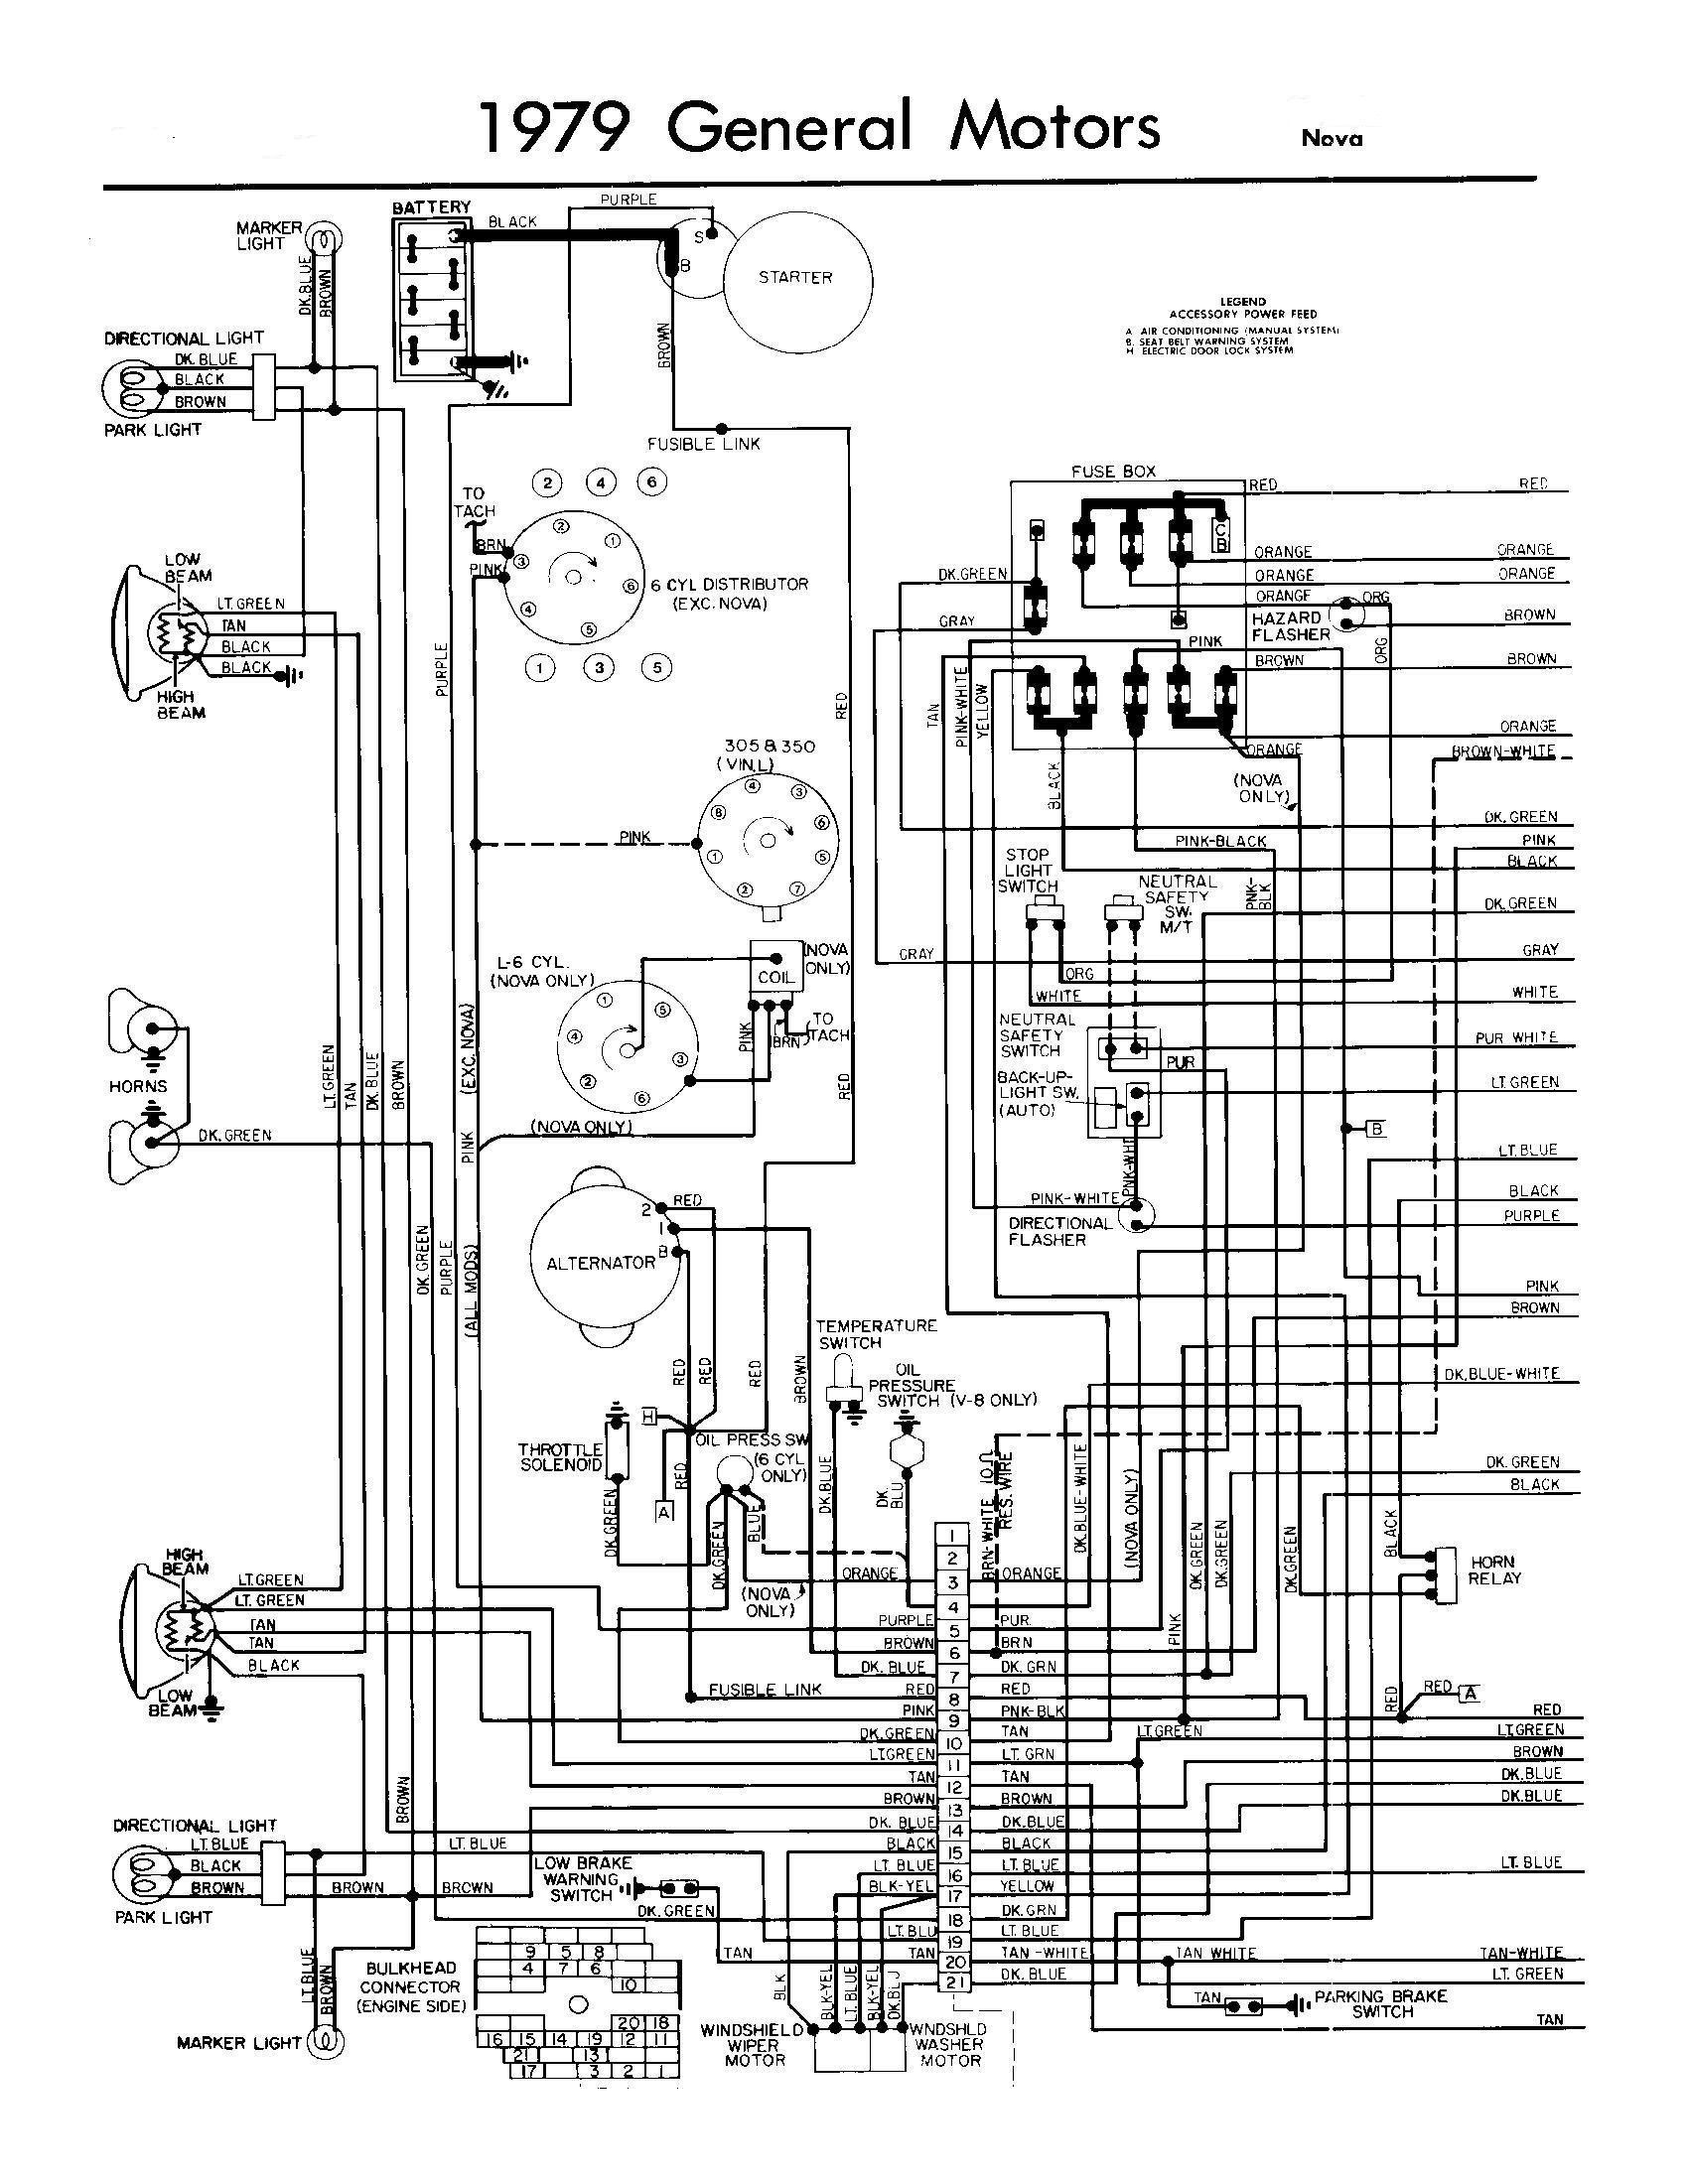 1973 nova wiring schematic wiring diagram u2022 rh growbyte co  1973 nova wiring harness